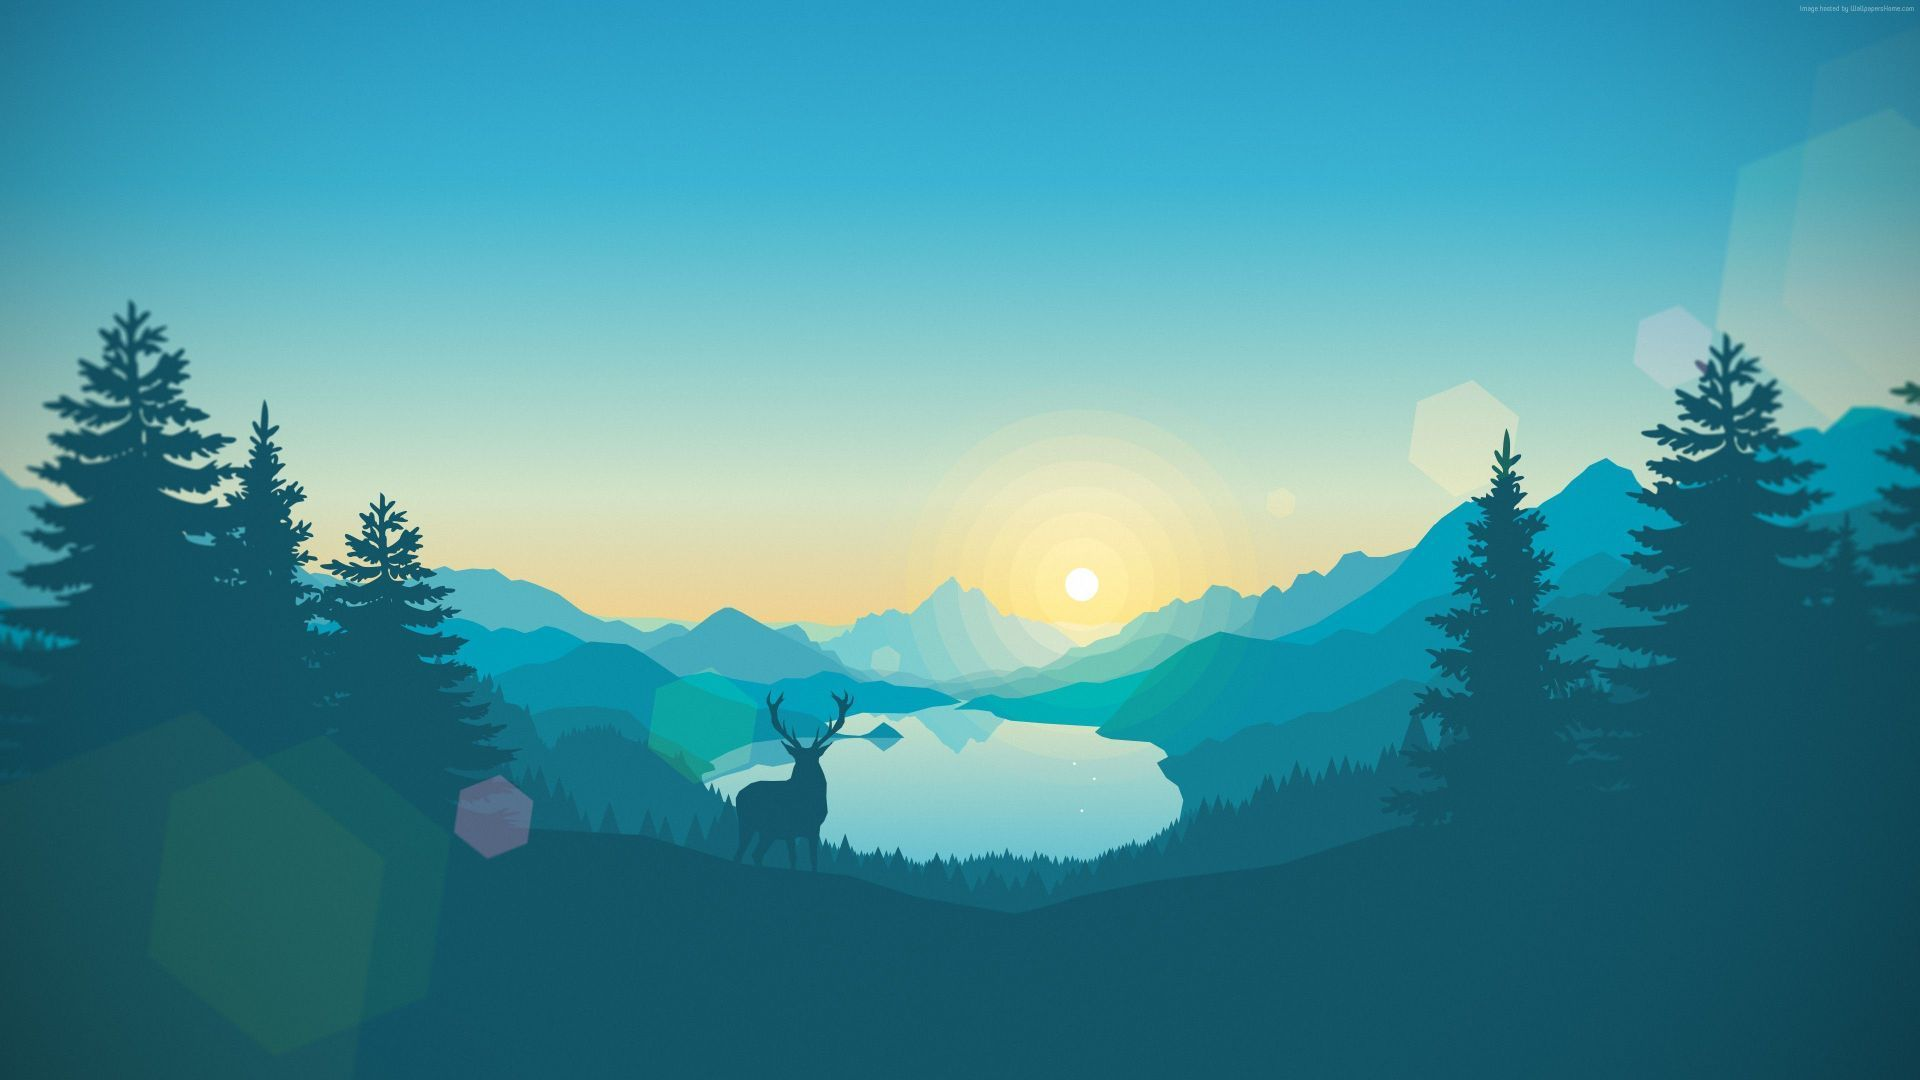 1920x1080 flat, forest, deer, 4k, 5k, iphone wallpaper, abstract ...